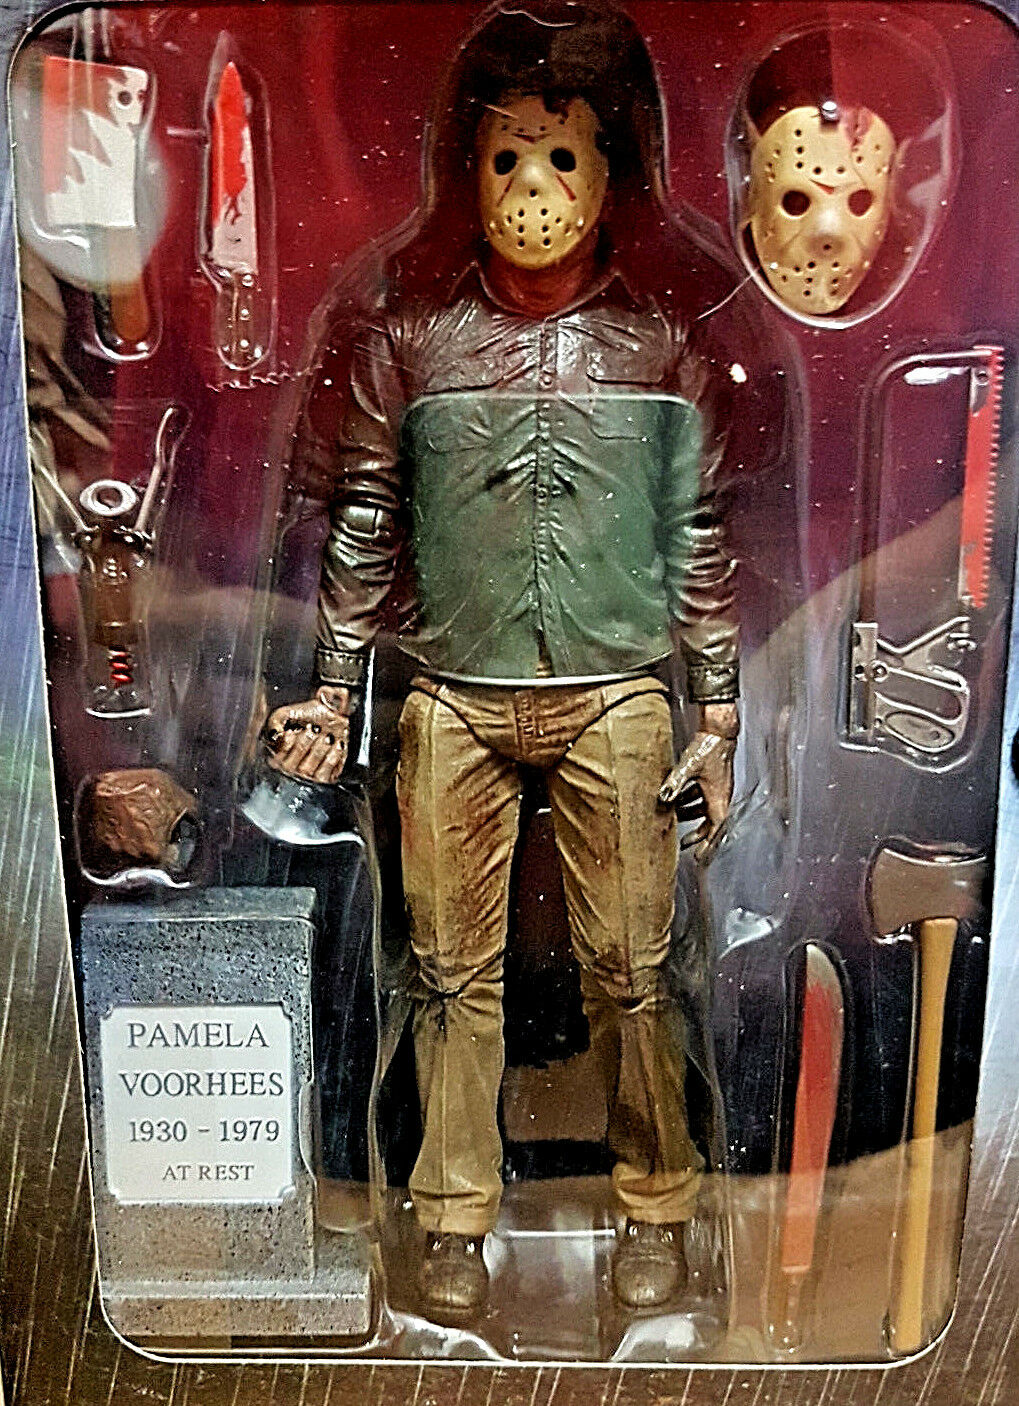 Jason Venerdì 13 4 Capitolo Finale Friday the 13th The Final Chapter - Neca 17cm